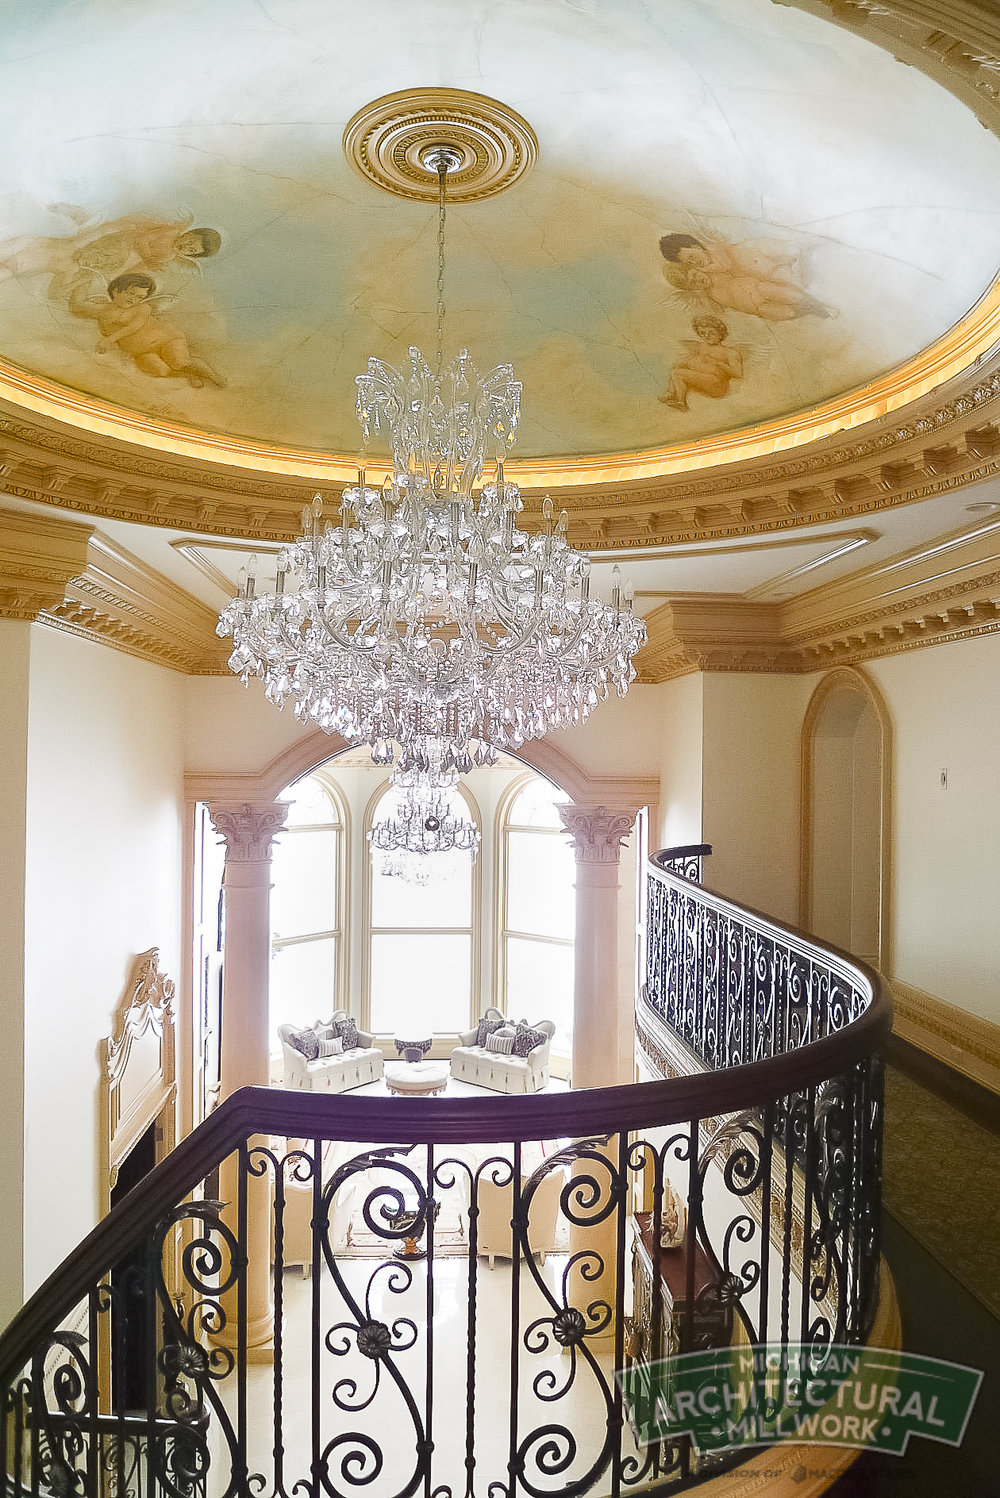 Michigan Architectural Millwork- Moulding and Millwork Photo-144.jpg